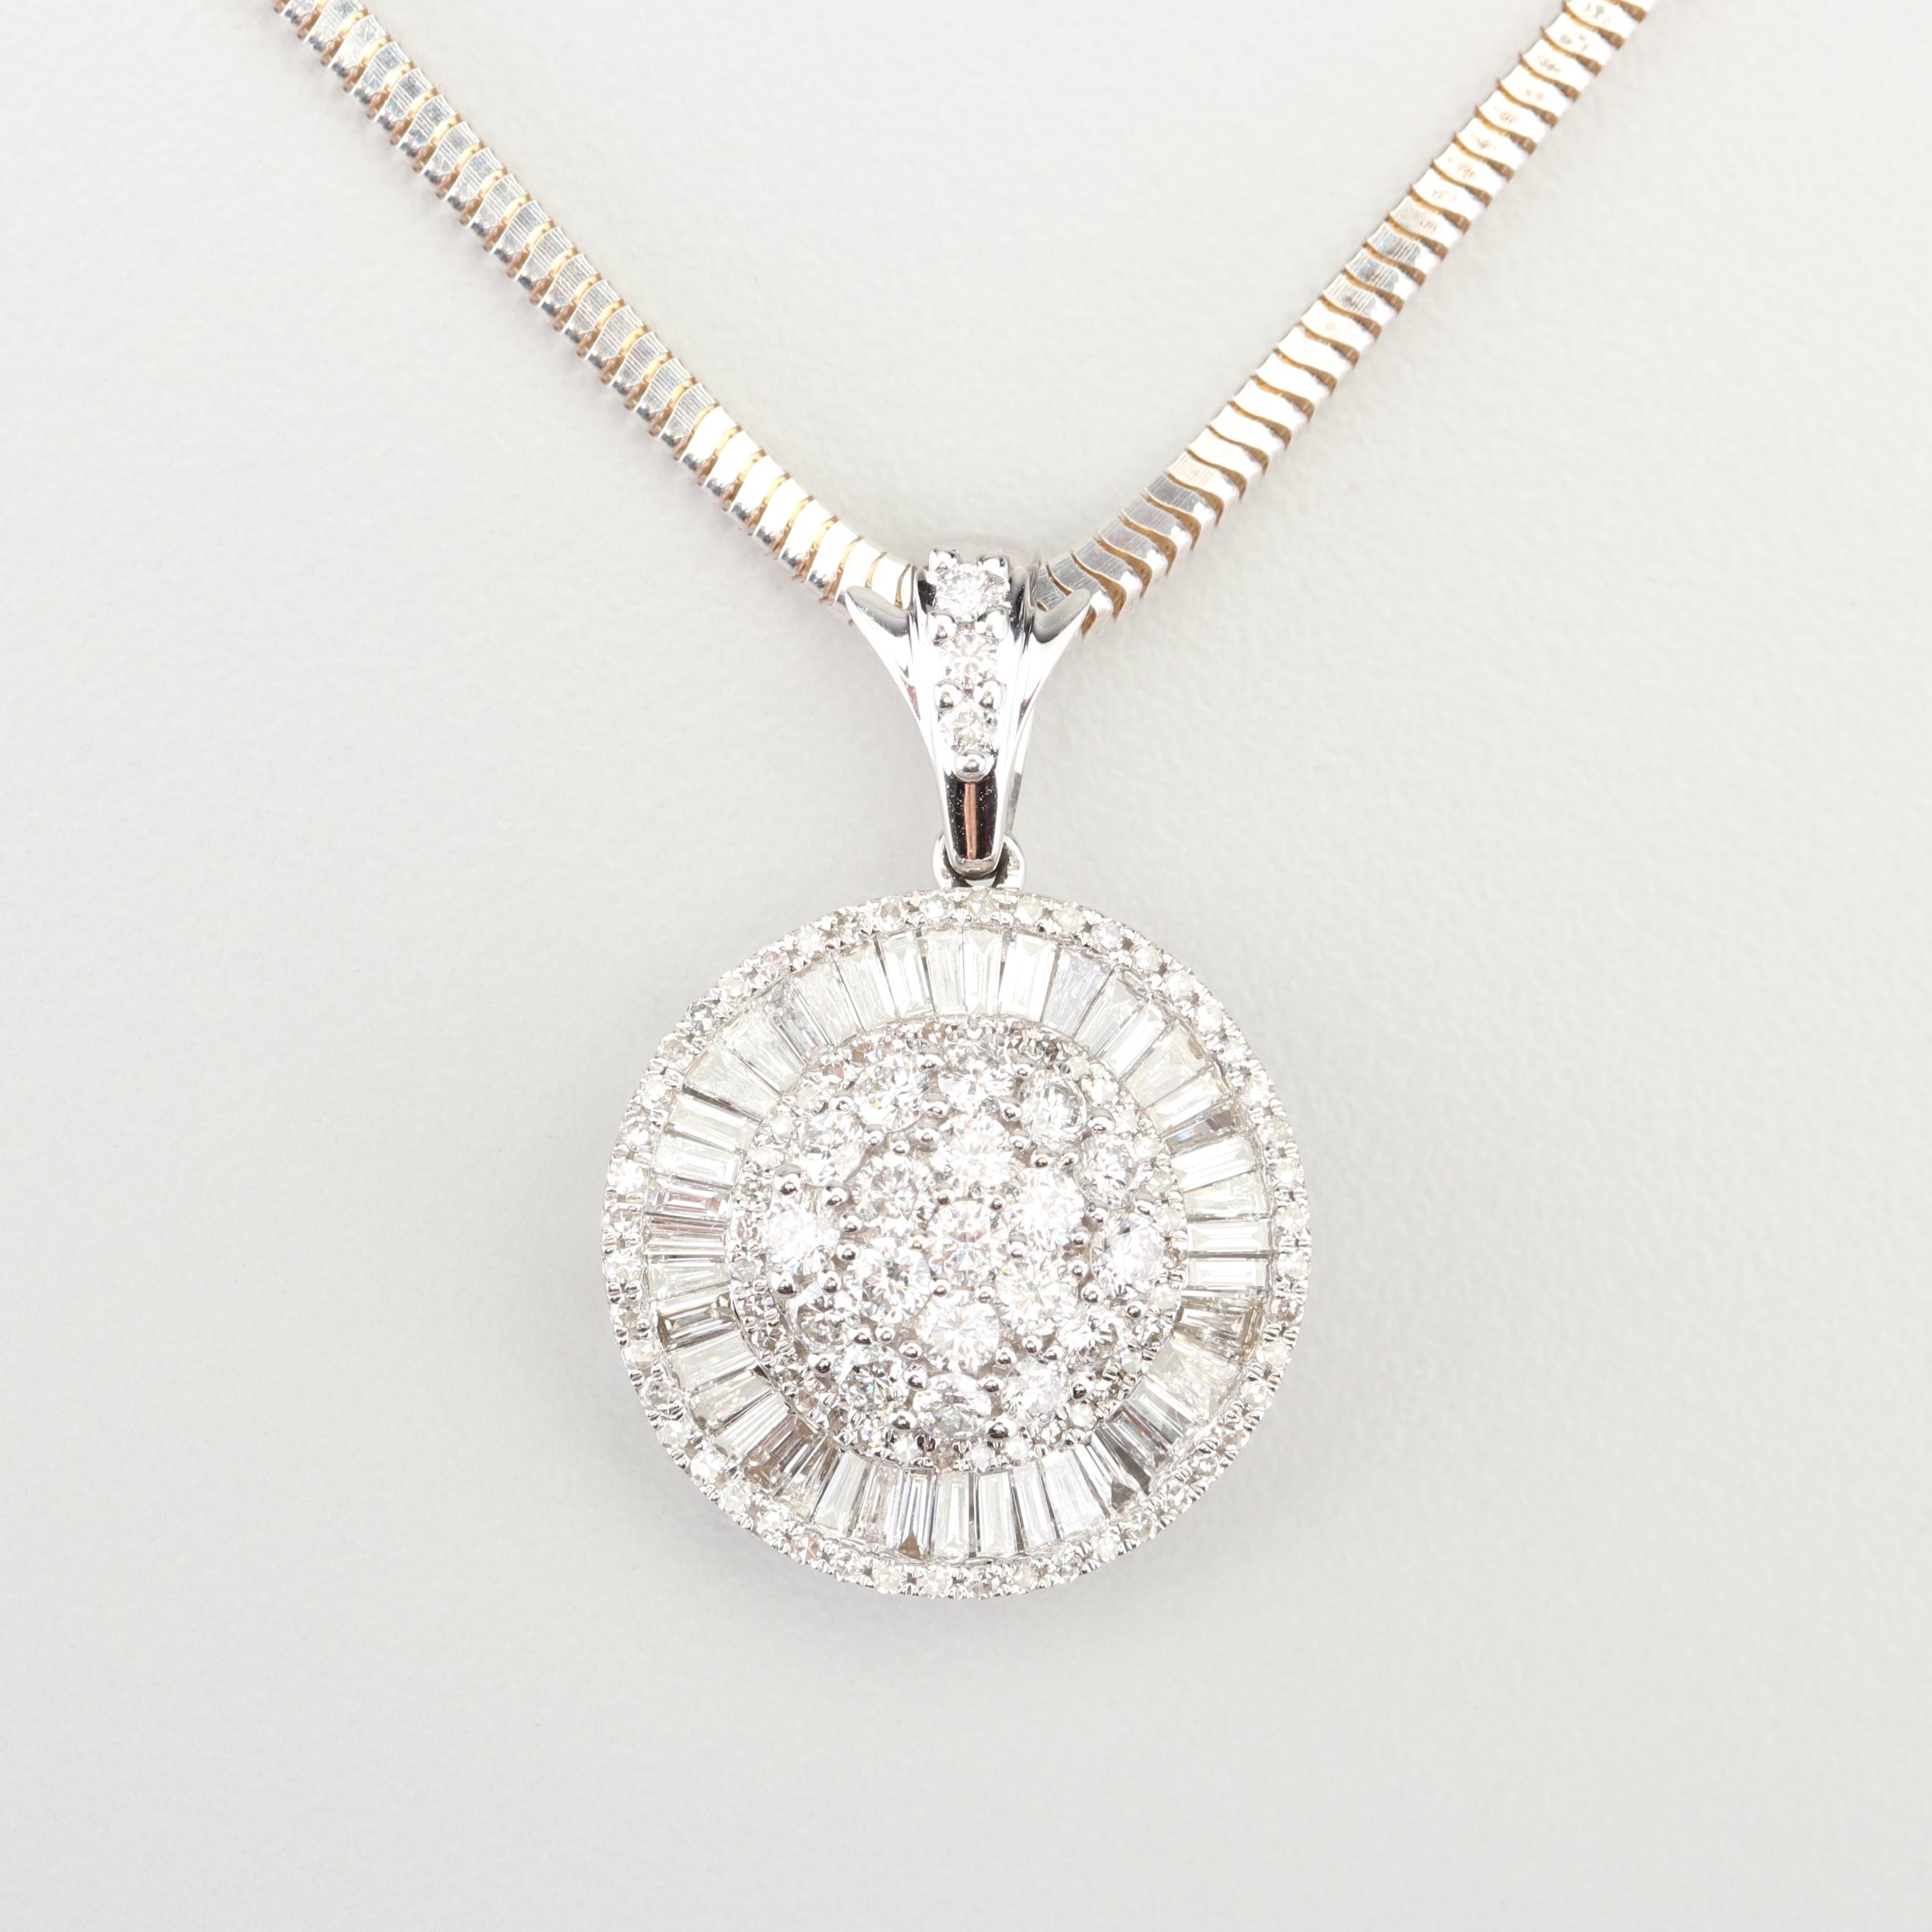 14K White Gold 1.95 CTW Diamond Cluster Pendant on a Sterling Silver Chain